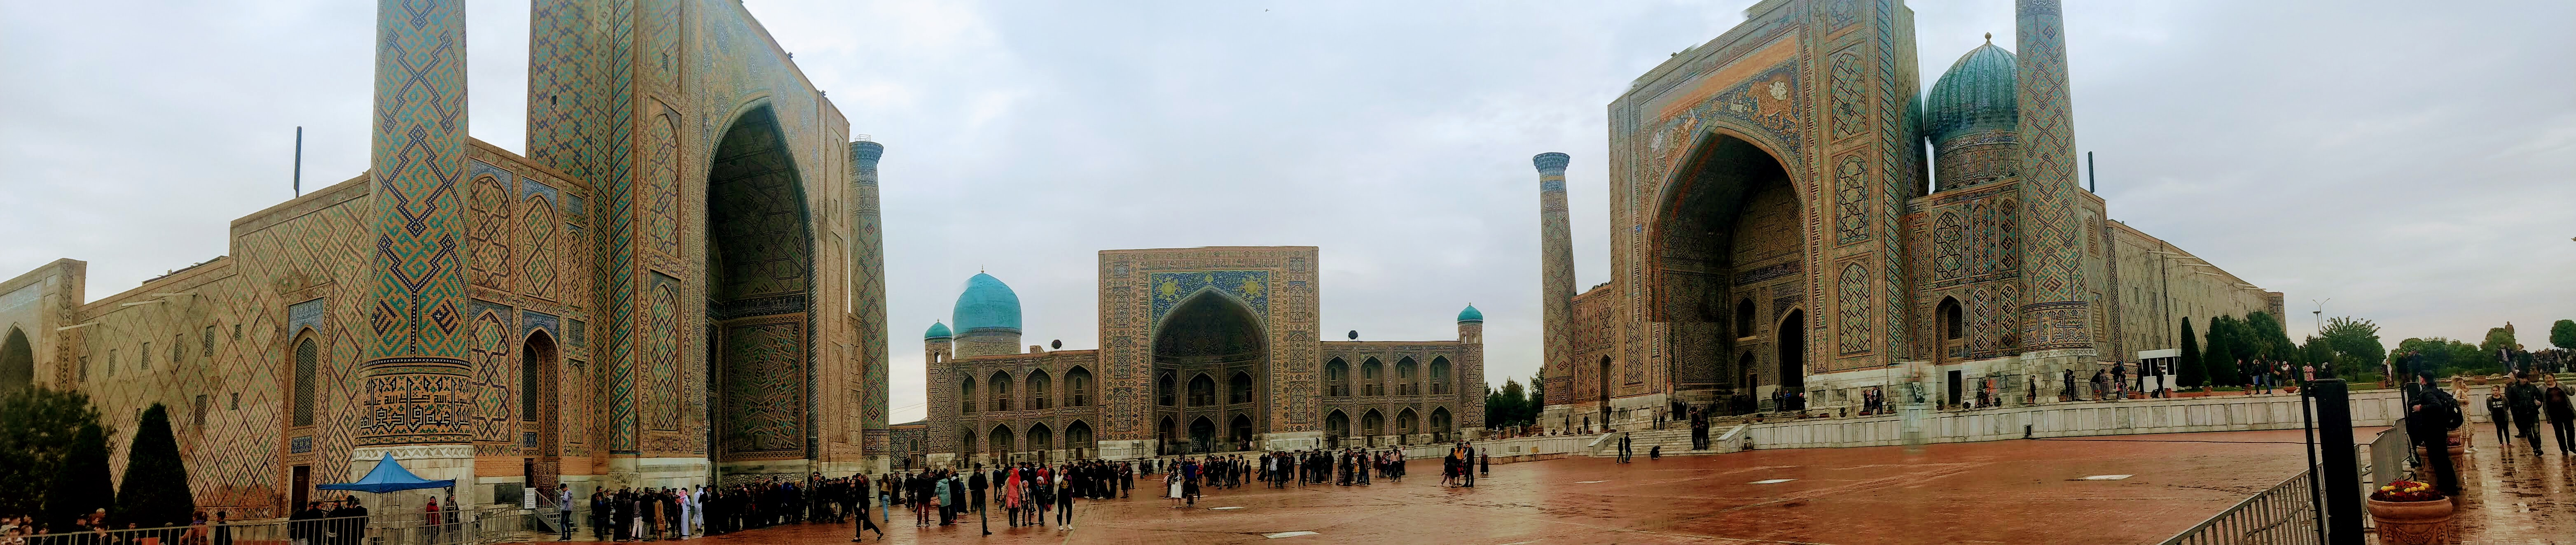 The Silk Road to Uzbekistan: A Report from the Inaugural